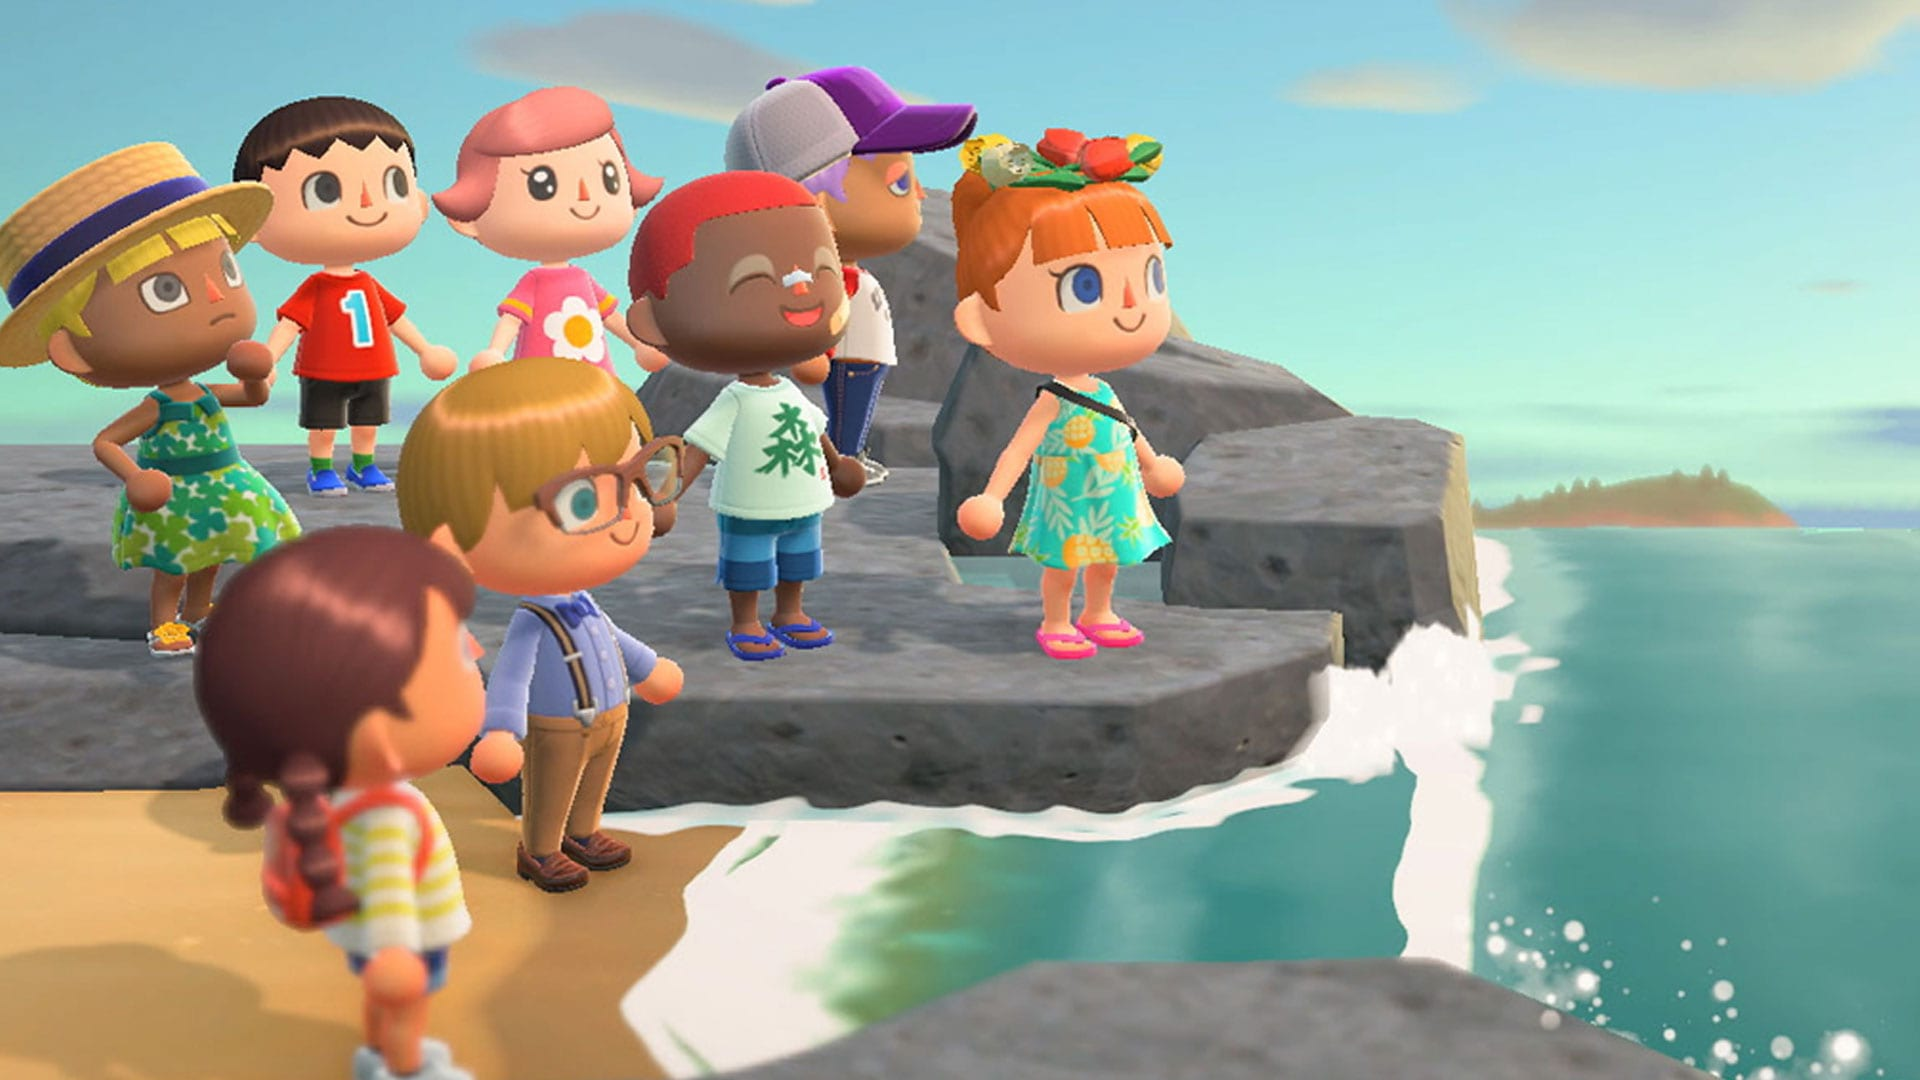 Animal Crossing New Horizons Cj Fish Prices How To Get Collectibles Challenges Find flounder from a vast selection of fast food & cereal premiums. animal crossing new horizons cj fish